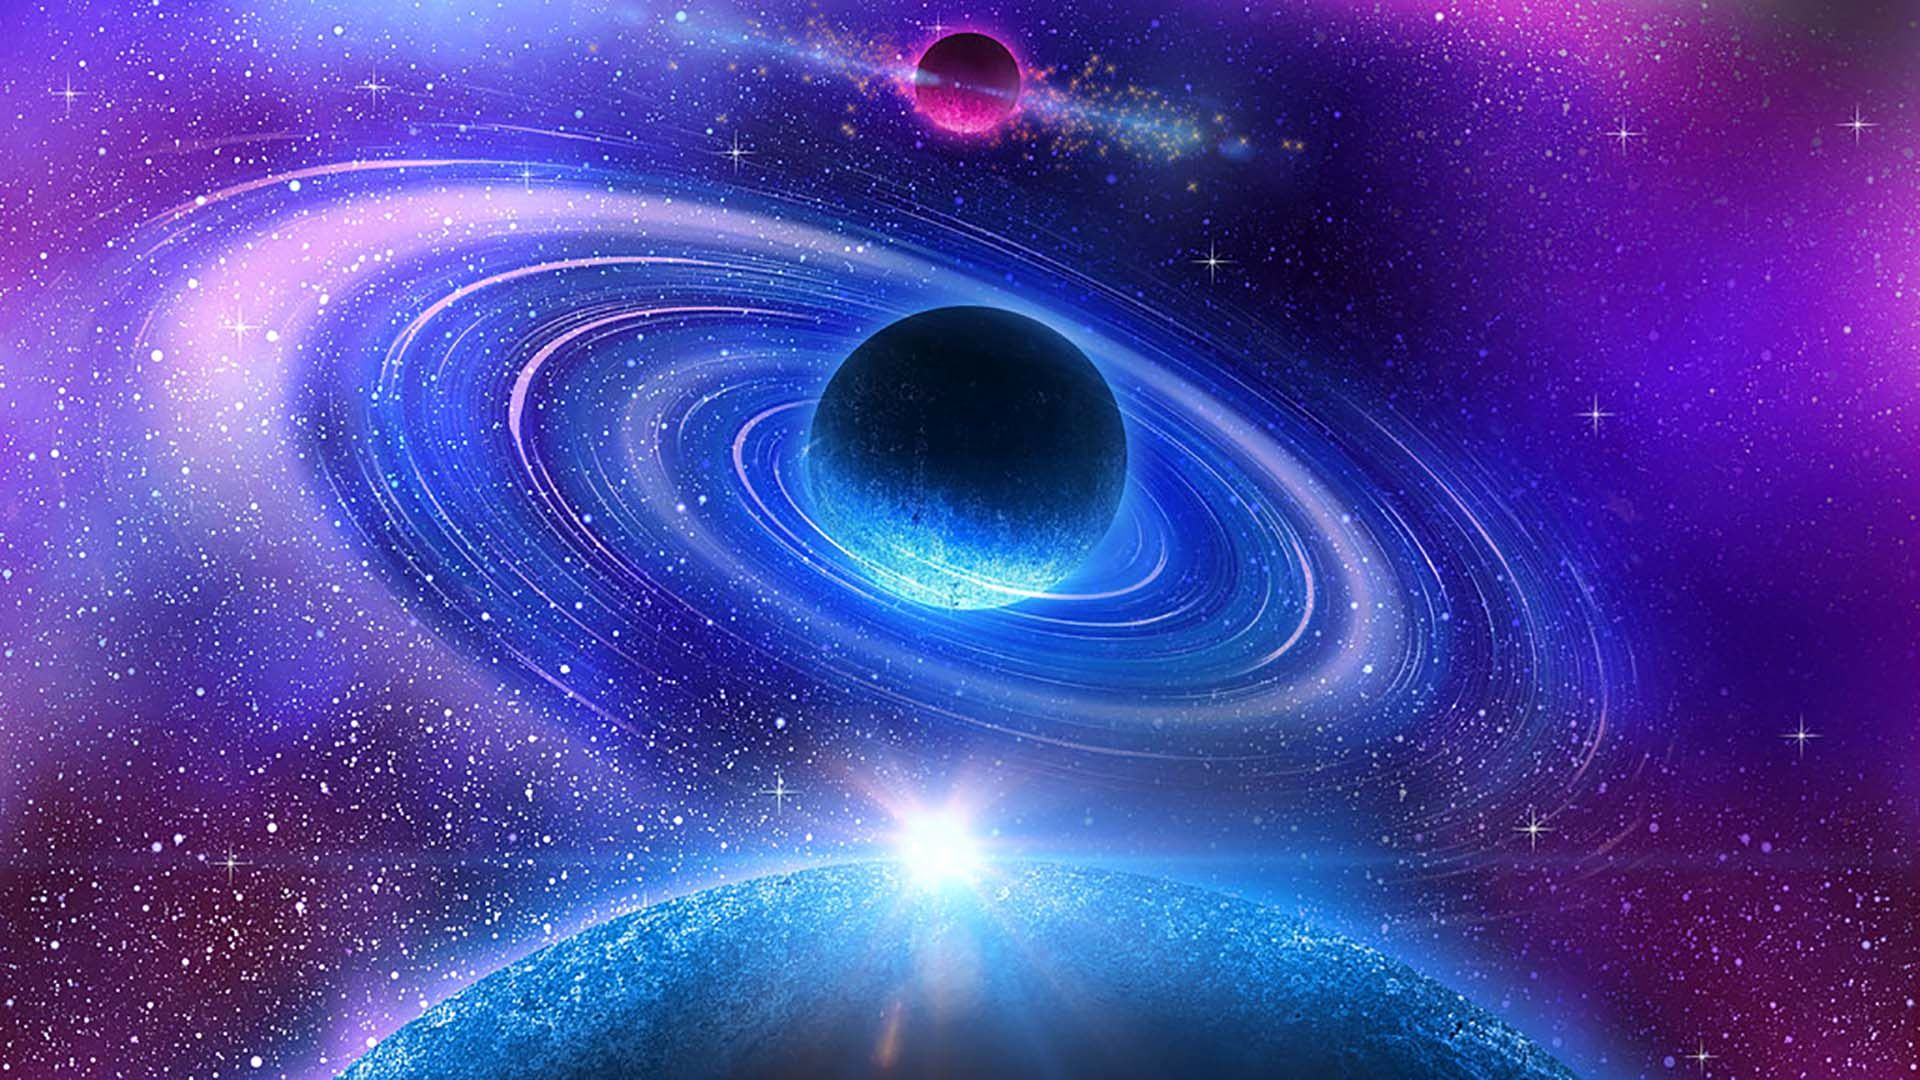 Cool Galaxy Wallpapers – 3 Tips to Help You Find the Right Wallpaper Fast